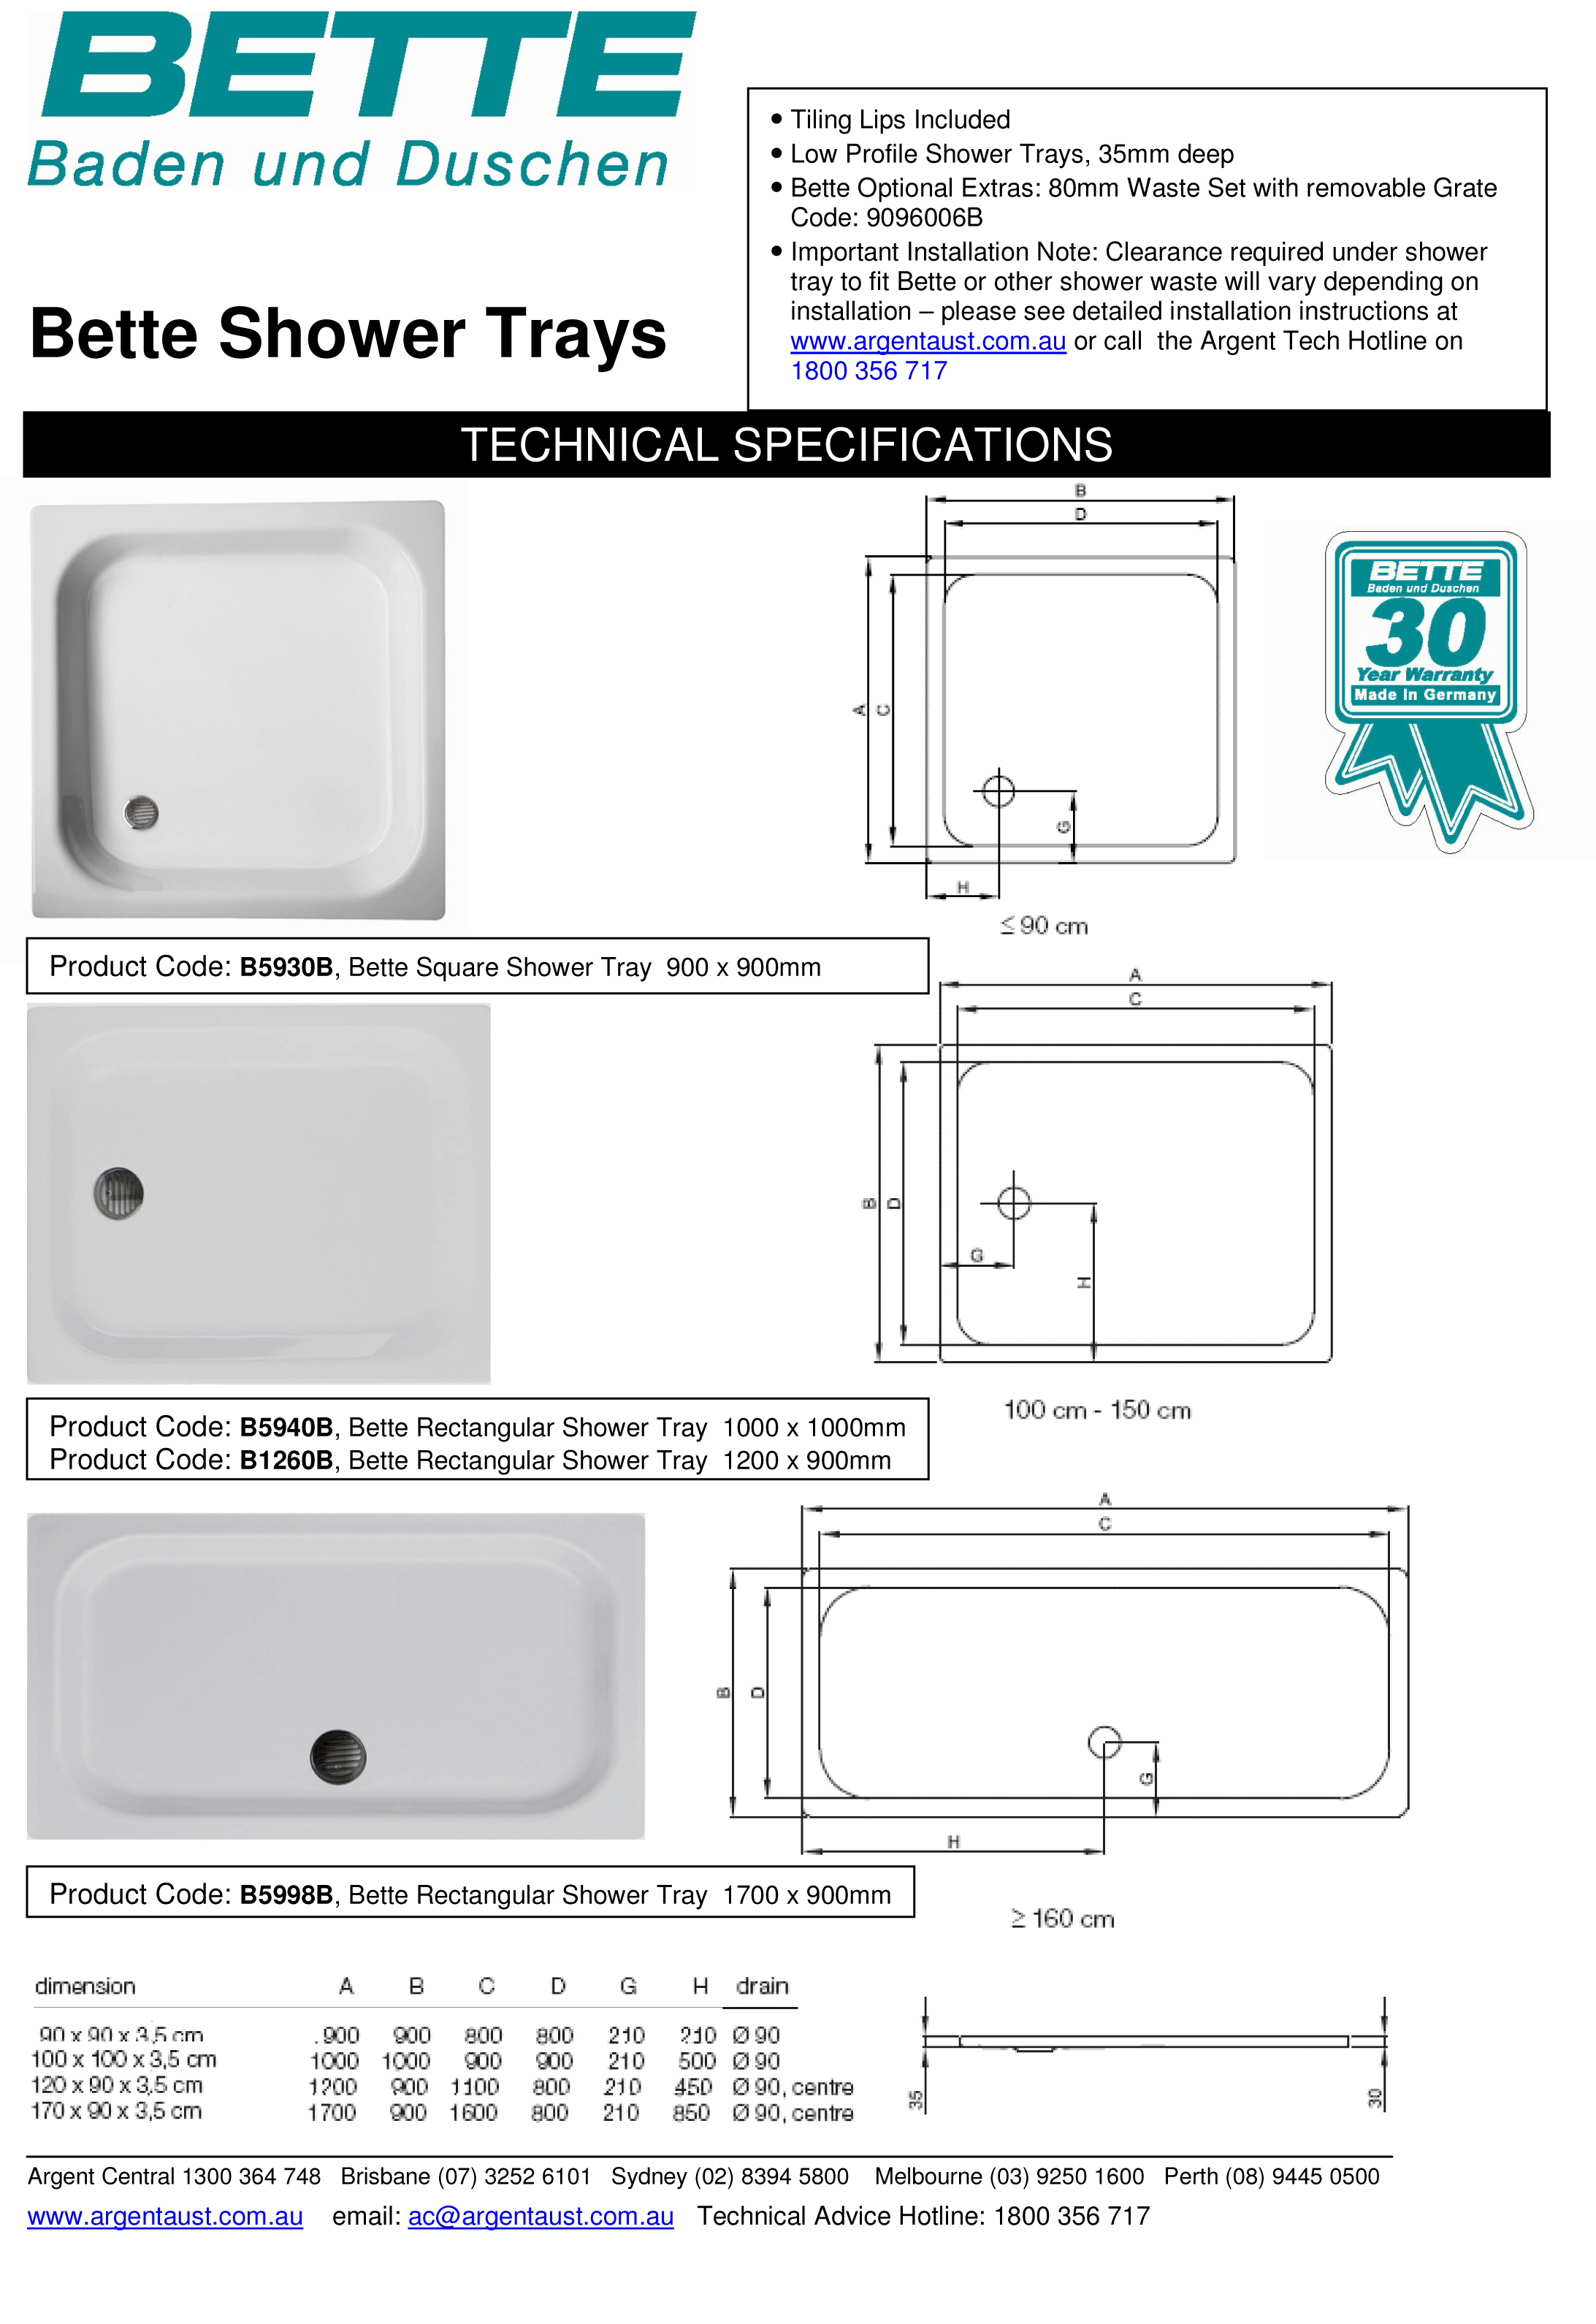 Bette 900 Square Shower Tray